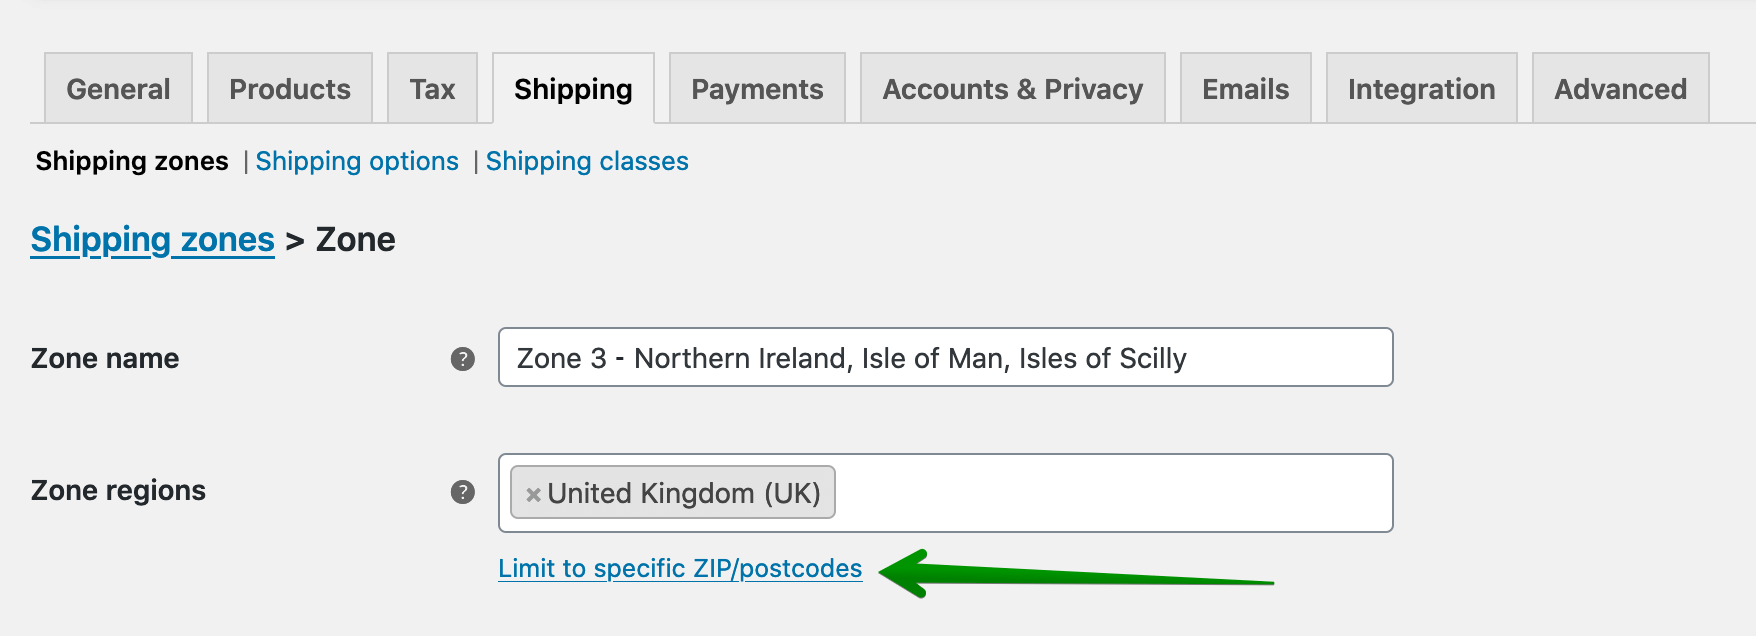 UK Shipping zones configuration - Limit to specific ZIP/postcodes